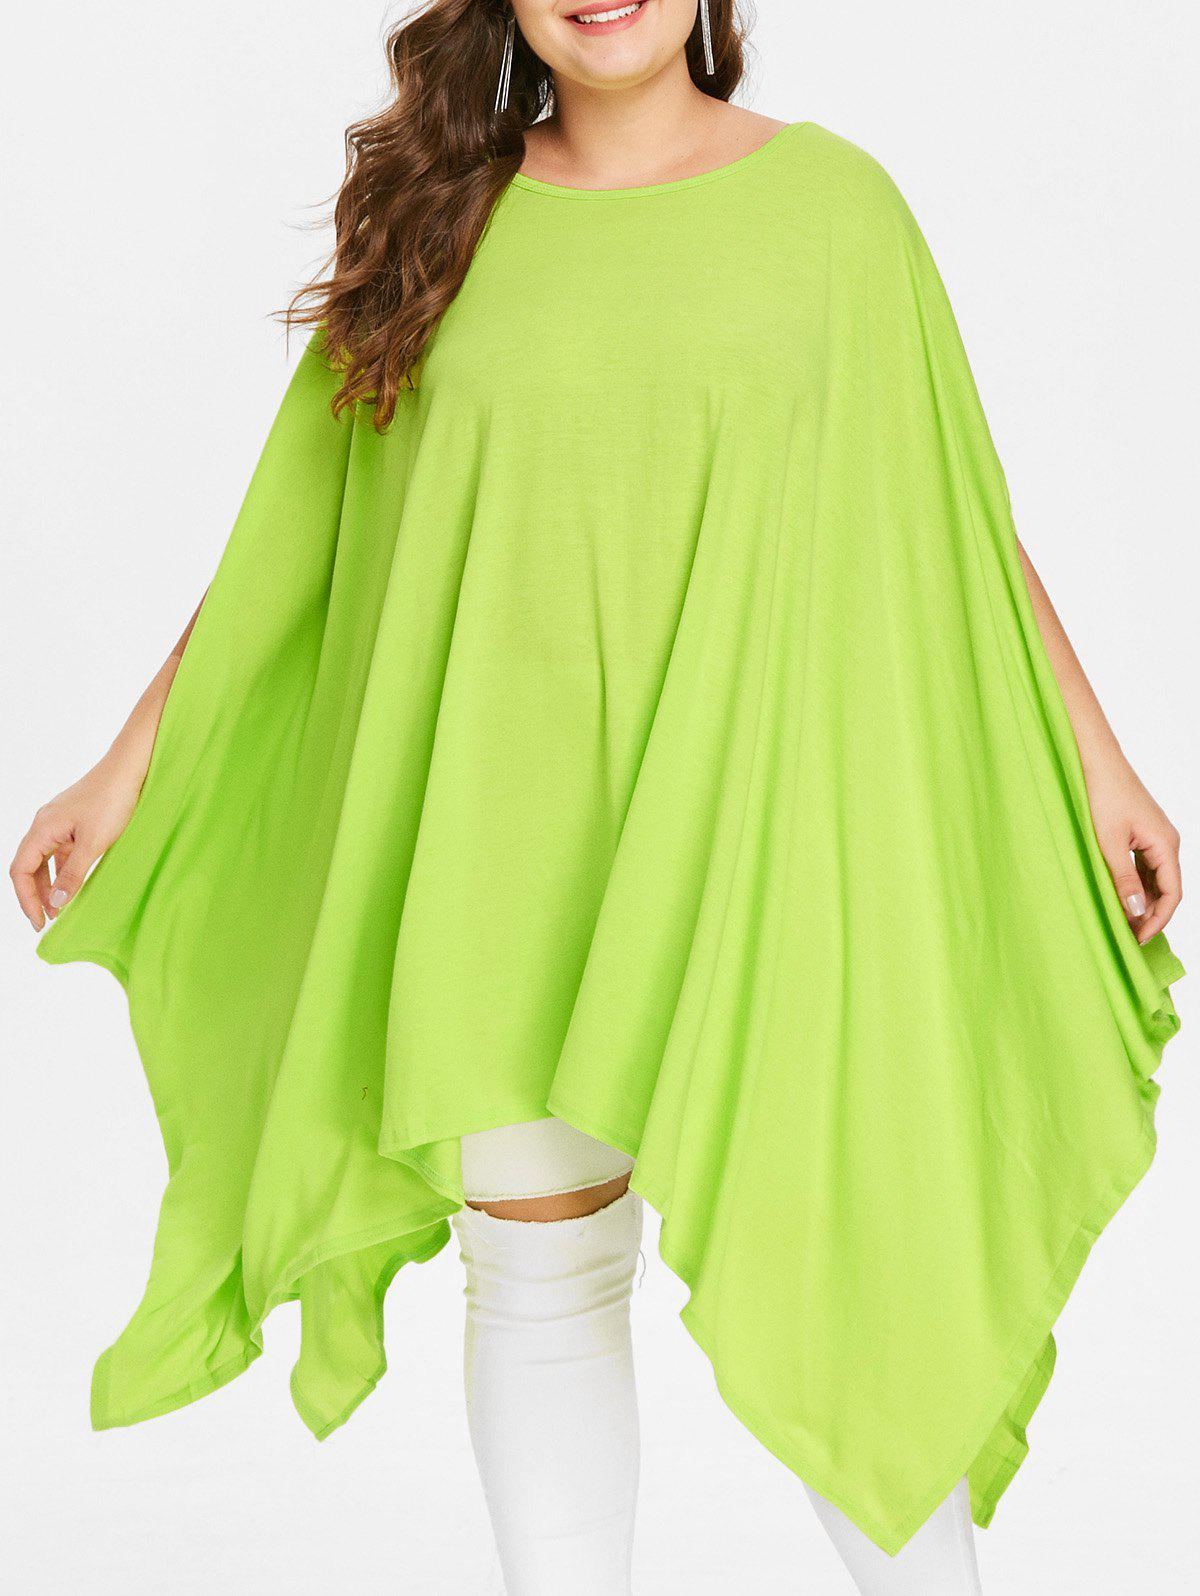 Handkerchief Plus Size Caped Top with Batwing Sleeve - GREEN S